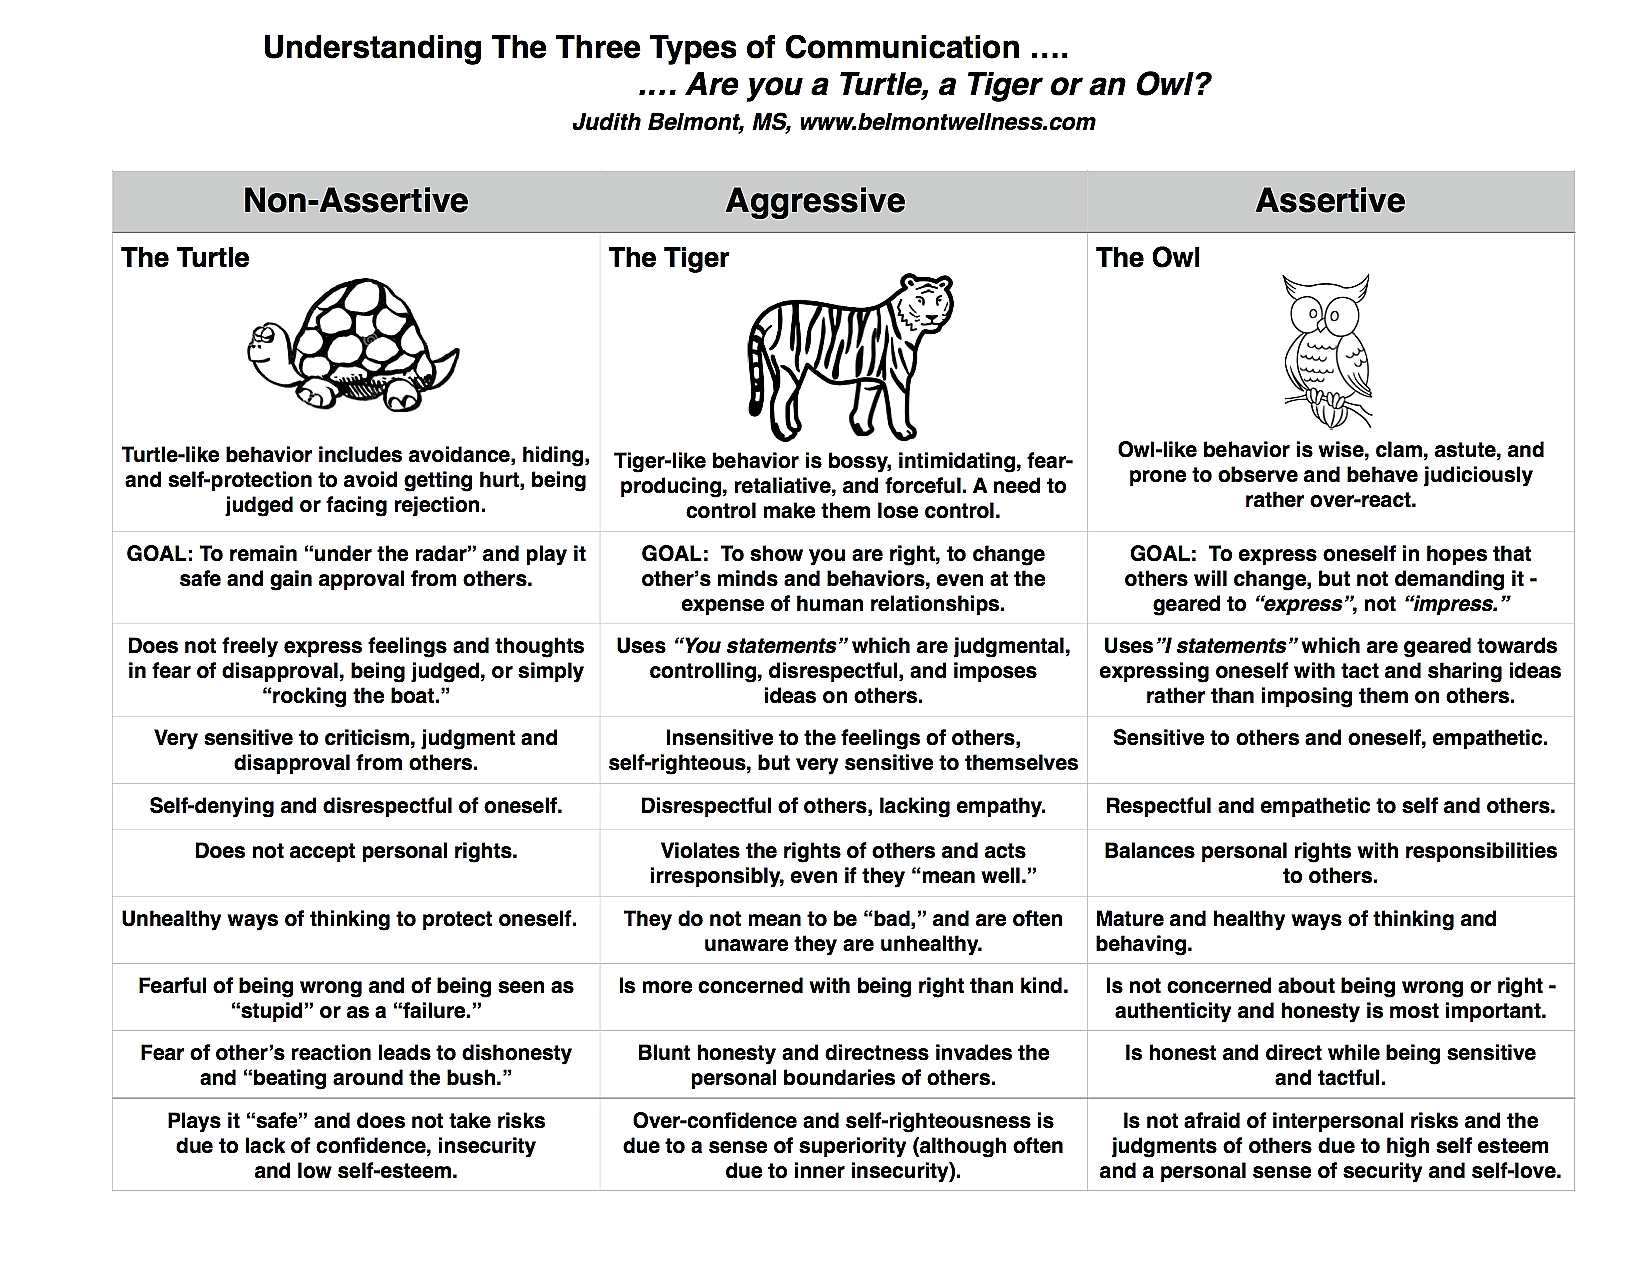 Worksheets Difference Quotient Worksheet quotes about places being difference quotient worksheet picture improve your interpersonal relationships understand the three group therapy worksheets on